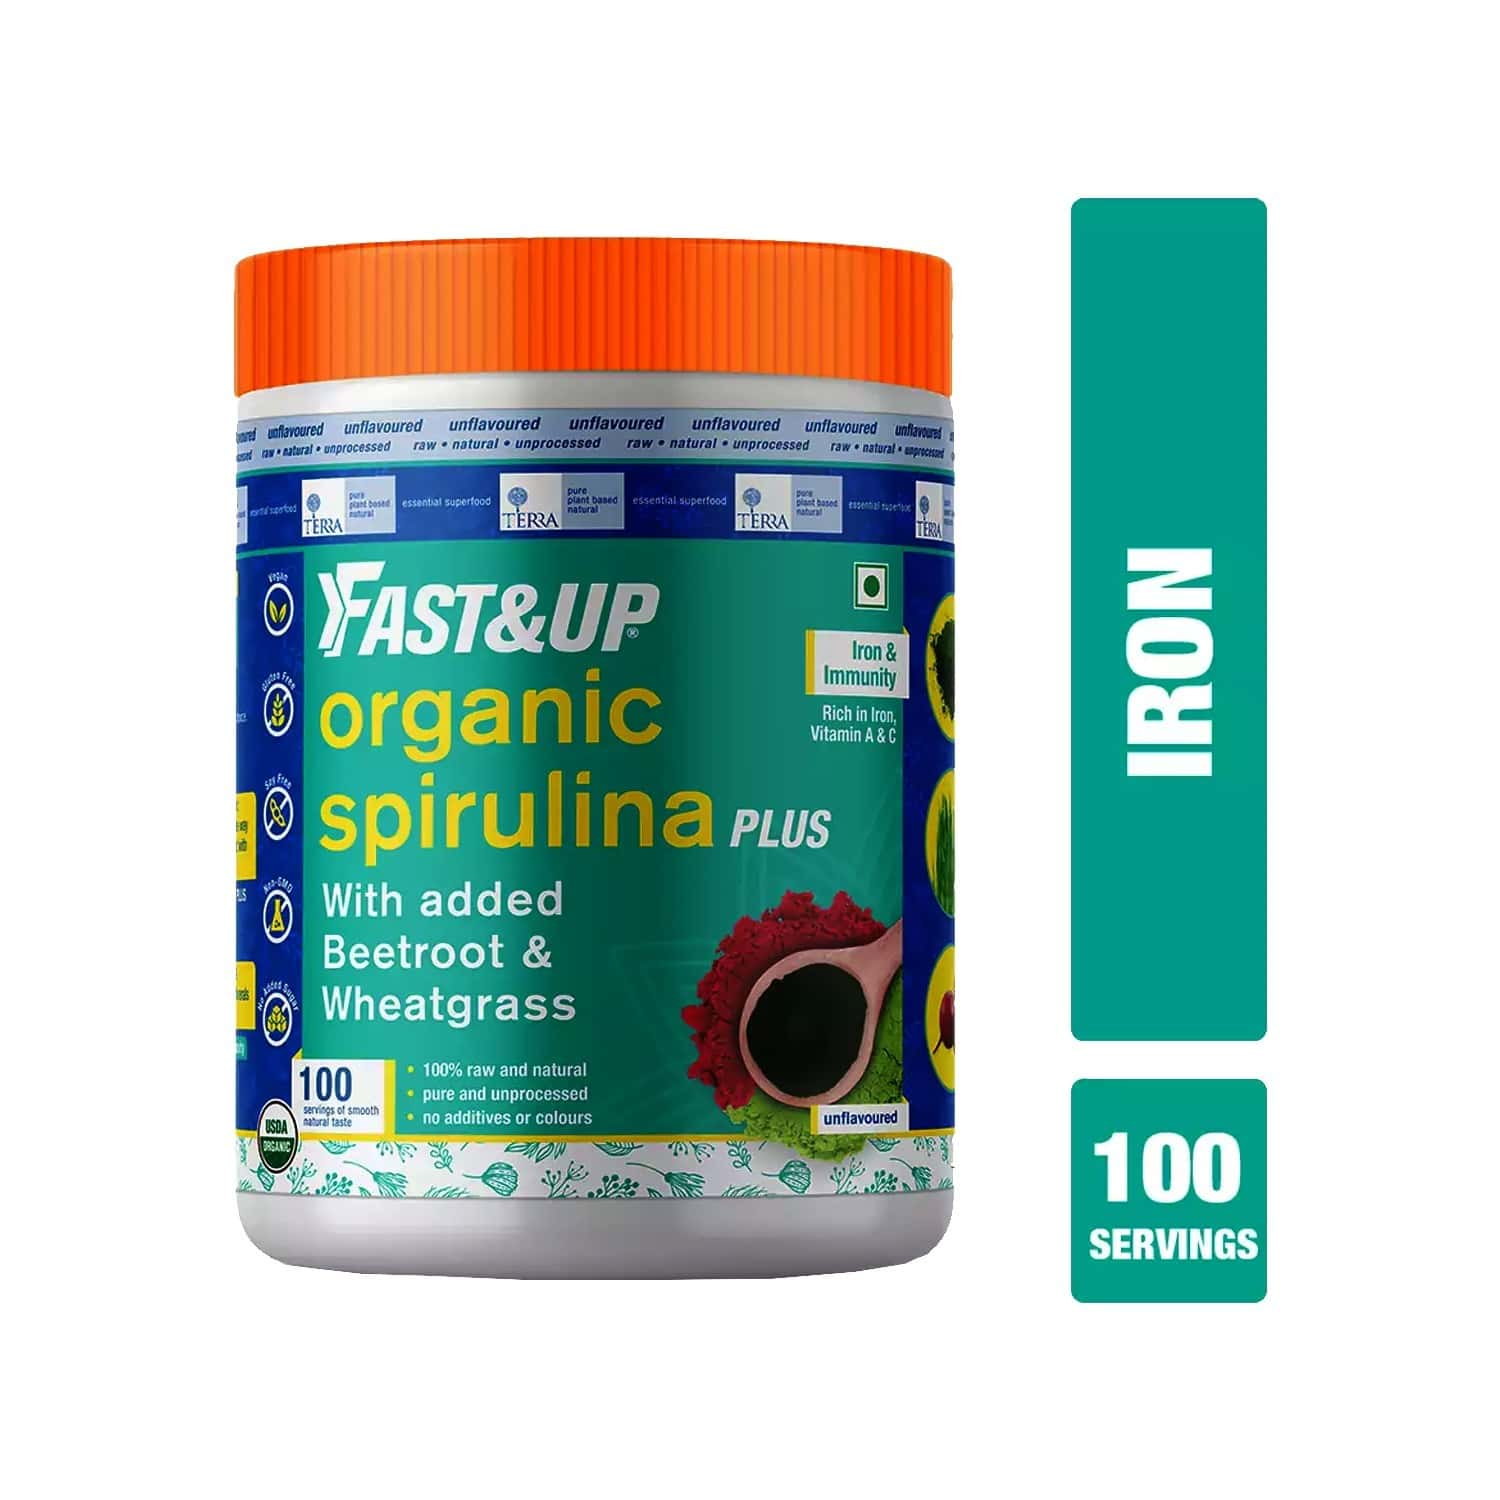 Fast&up Organic Spirulina Plus Wheatgrass And Beetroot - Iron And Immunity - Plant Based Powder - Unflavoured - 300 Gm